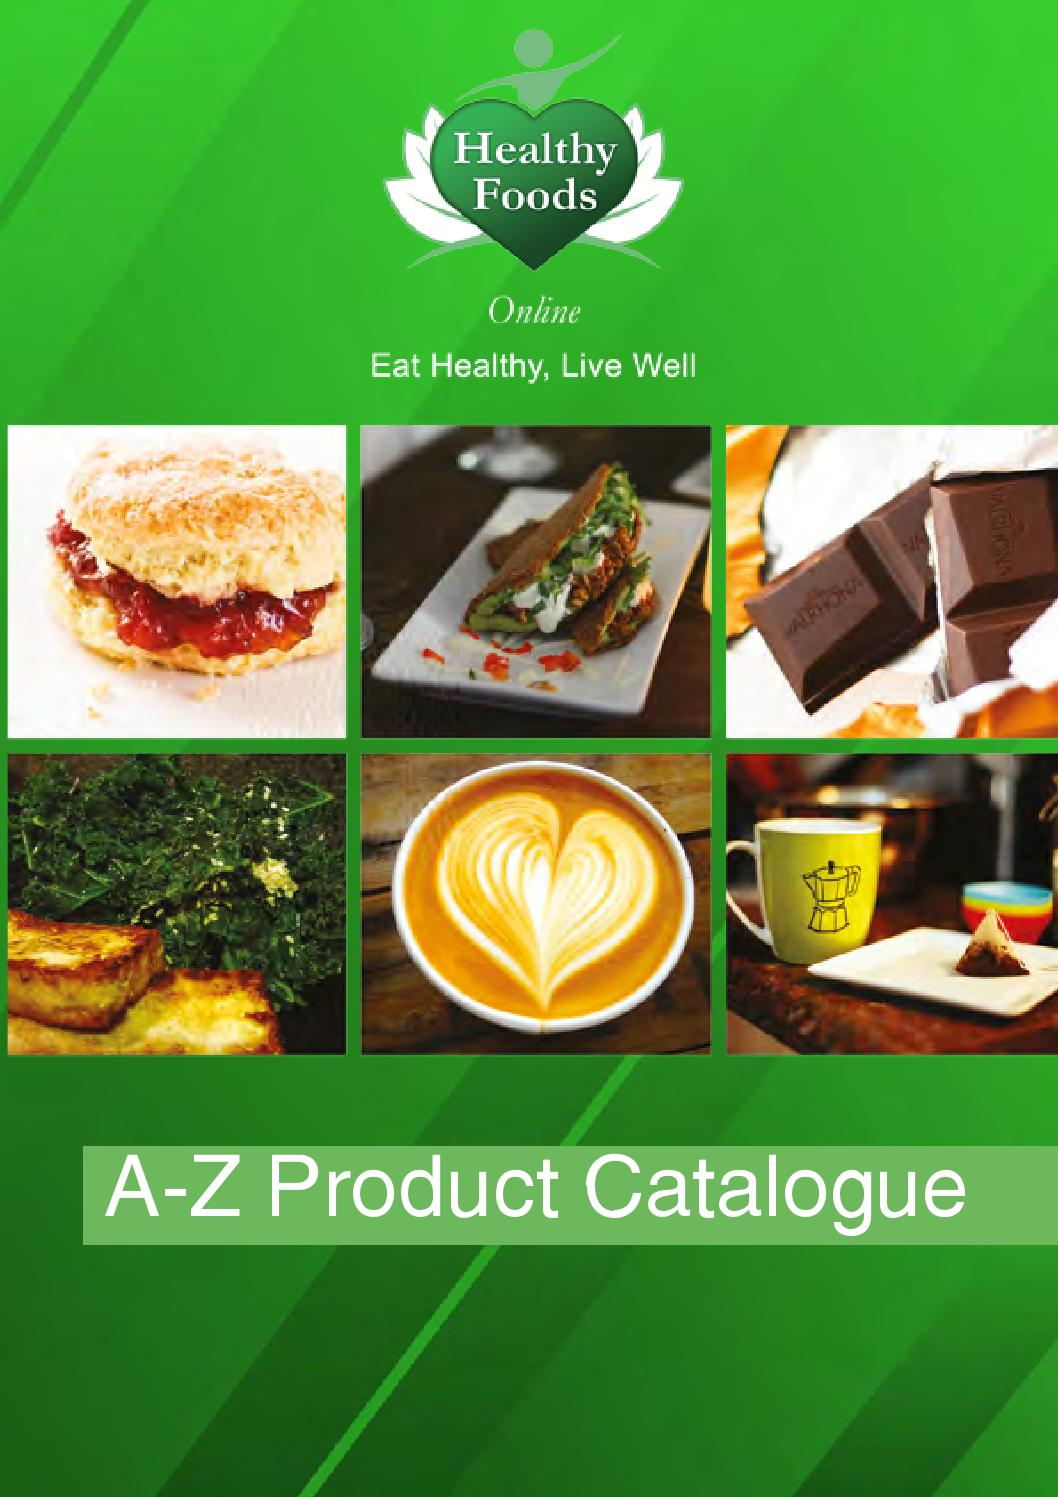 Healthy Foods Online A-Z Buying Guide by Healthy Foods